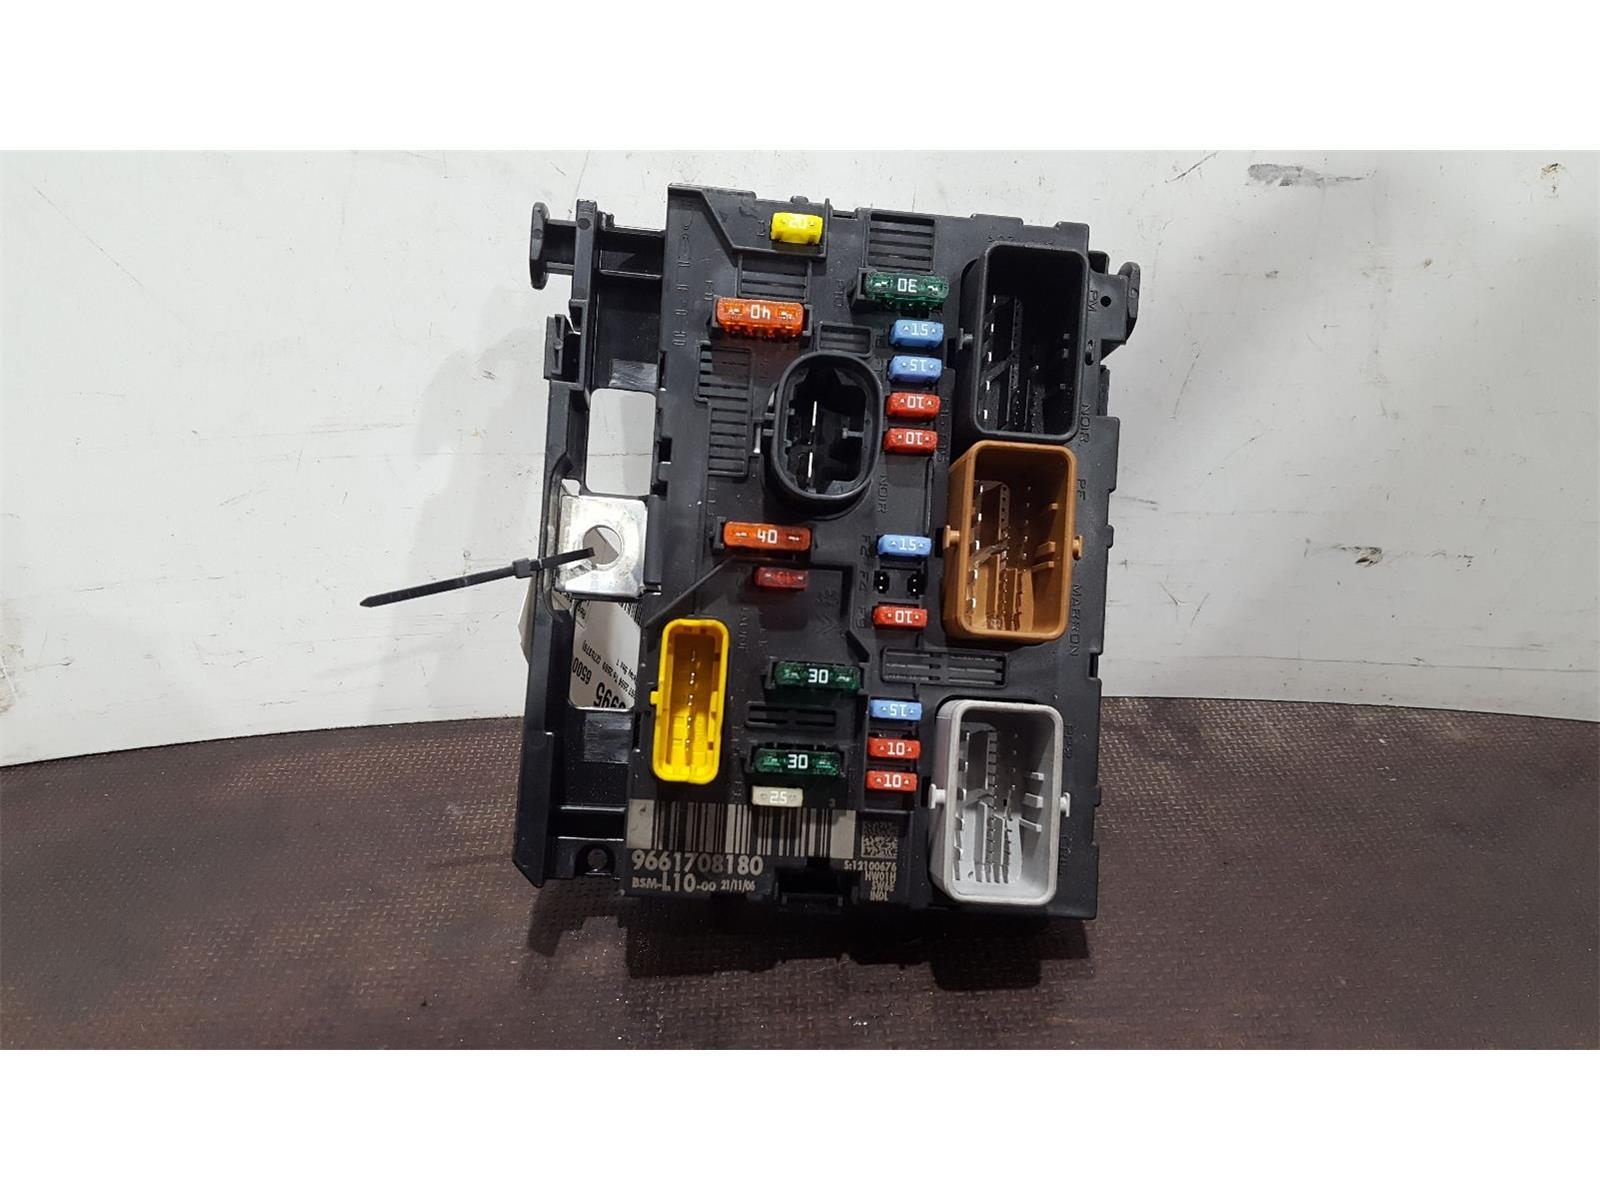 hight resolution of peugeot 207 2006 to 2009 fuse box bsi bmi bcm body control unit 9661708180